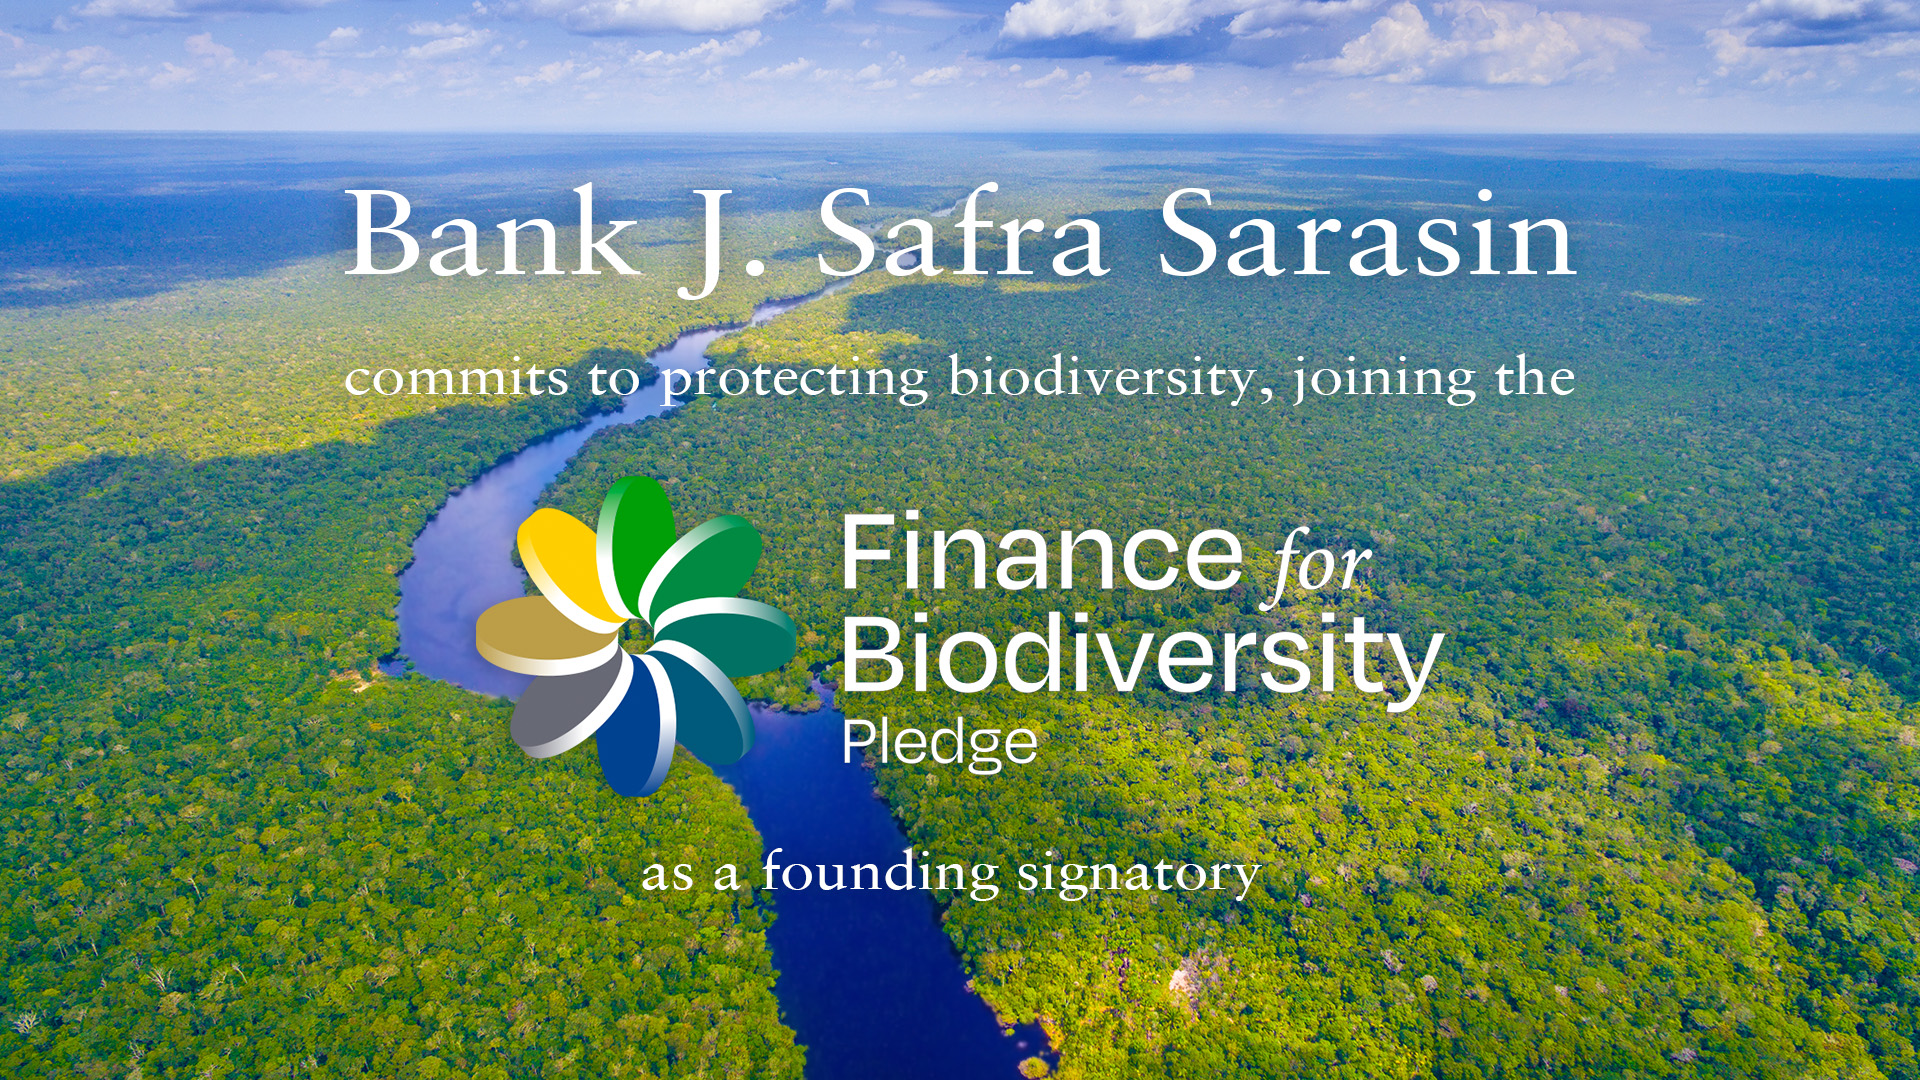 finance_for_biodiversity_pledge_thumb_v2.jpg